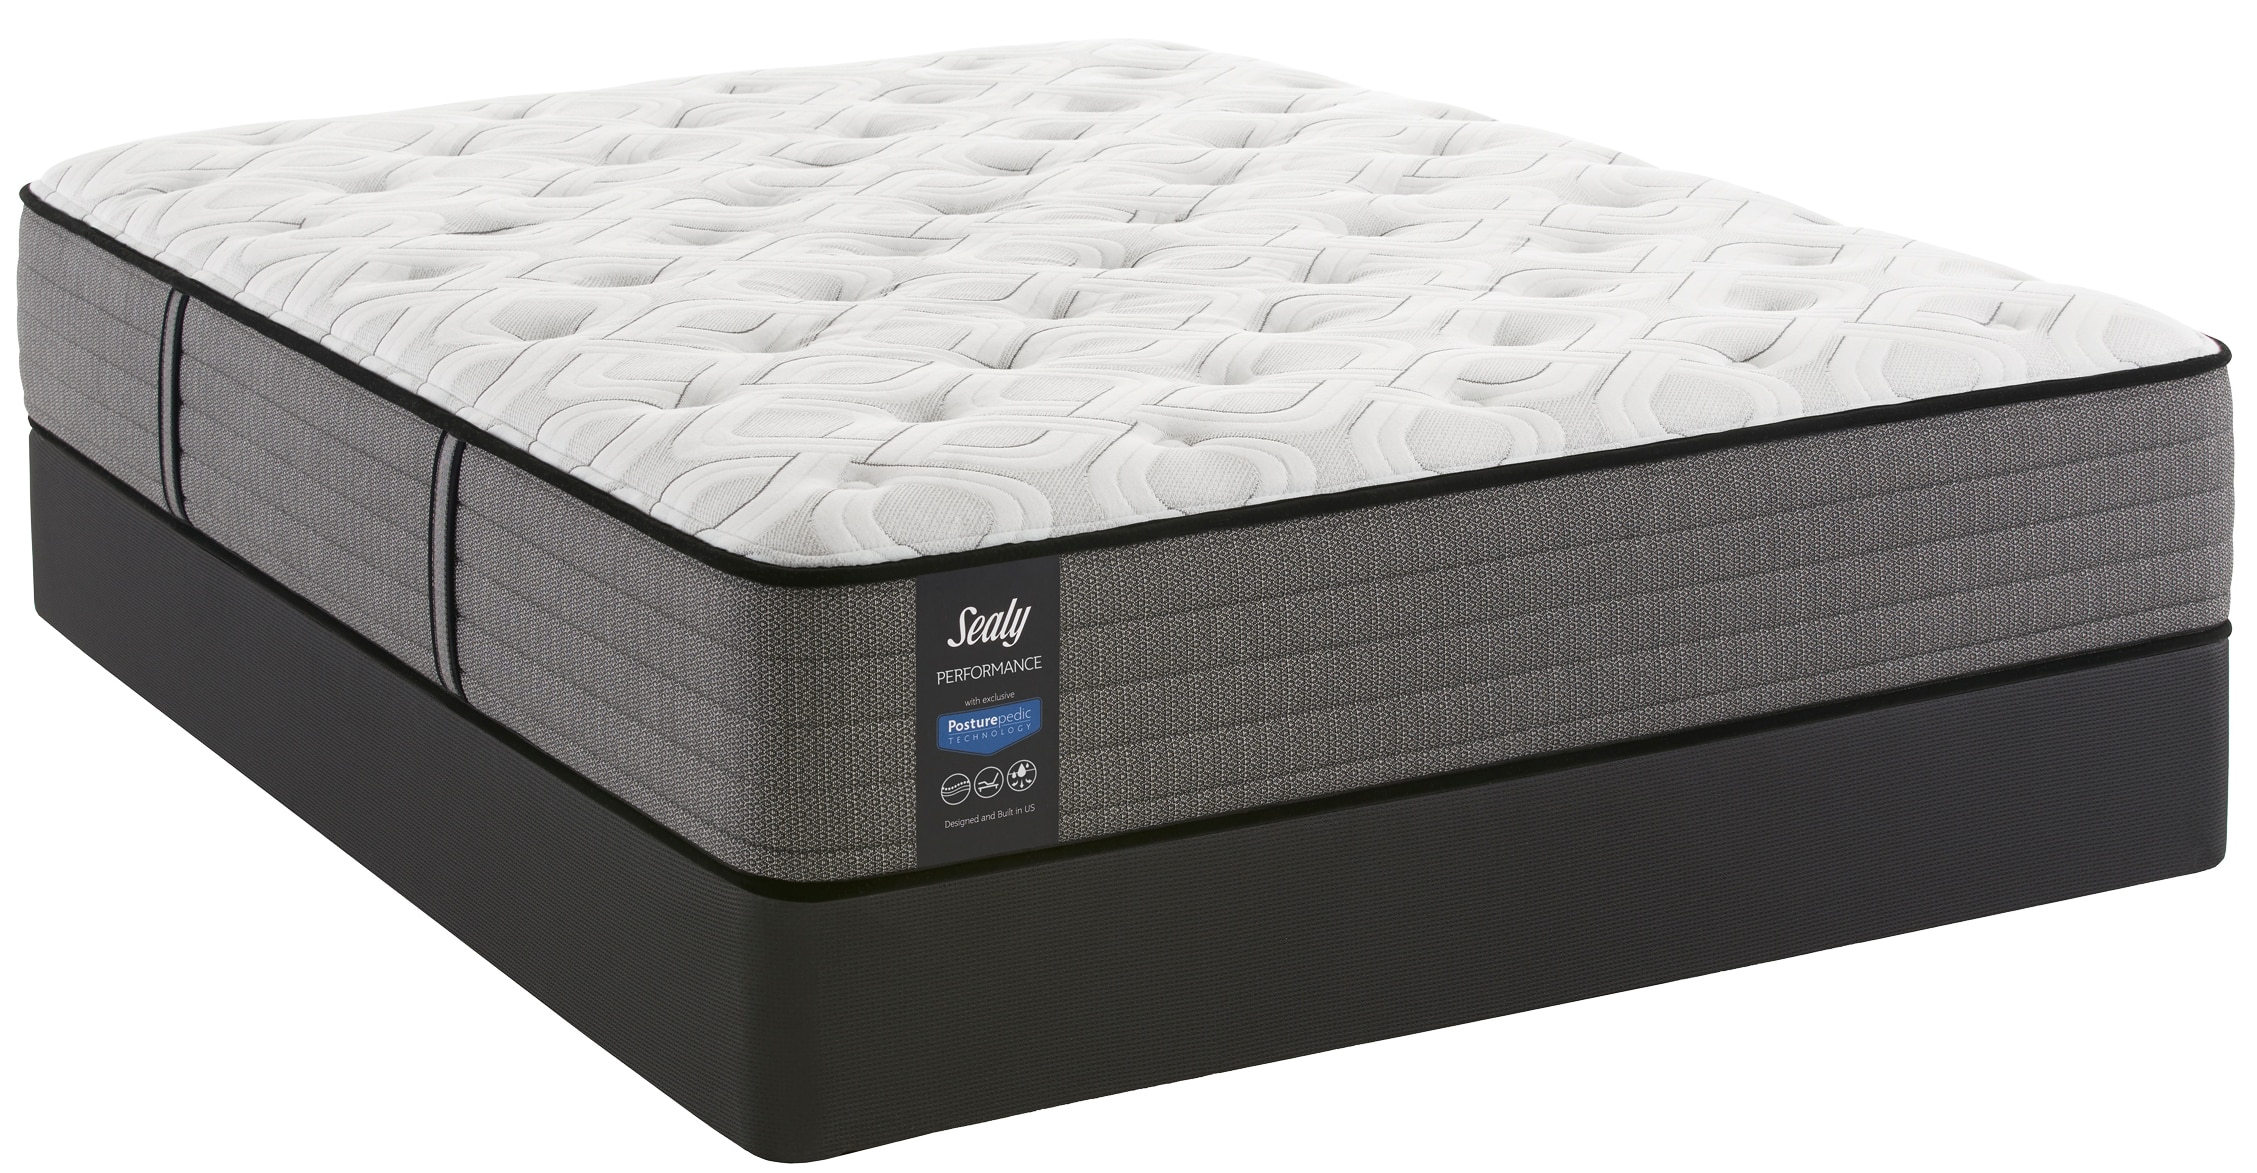 Morning Dove Firm King Mattress and Boxspring Set